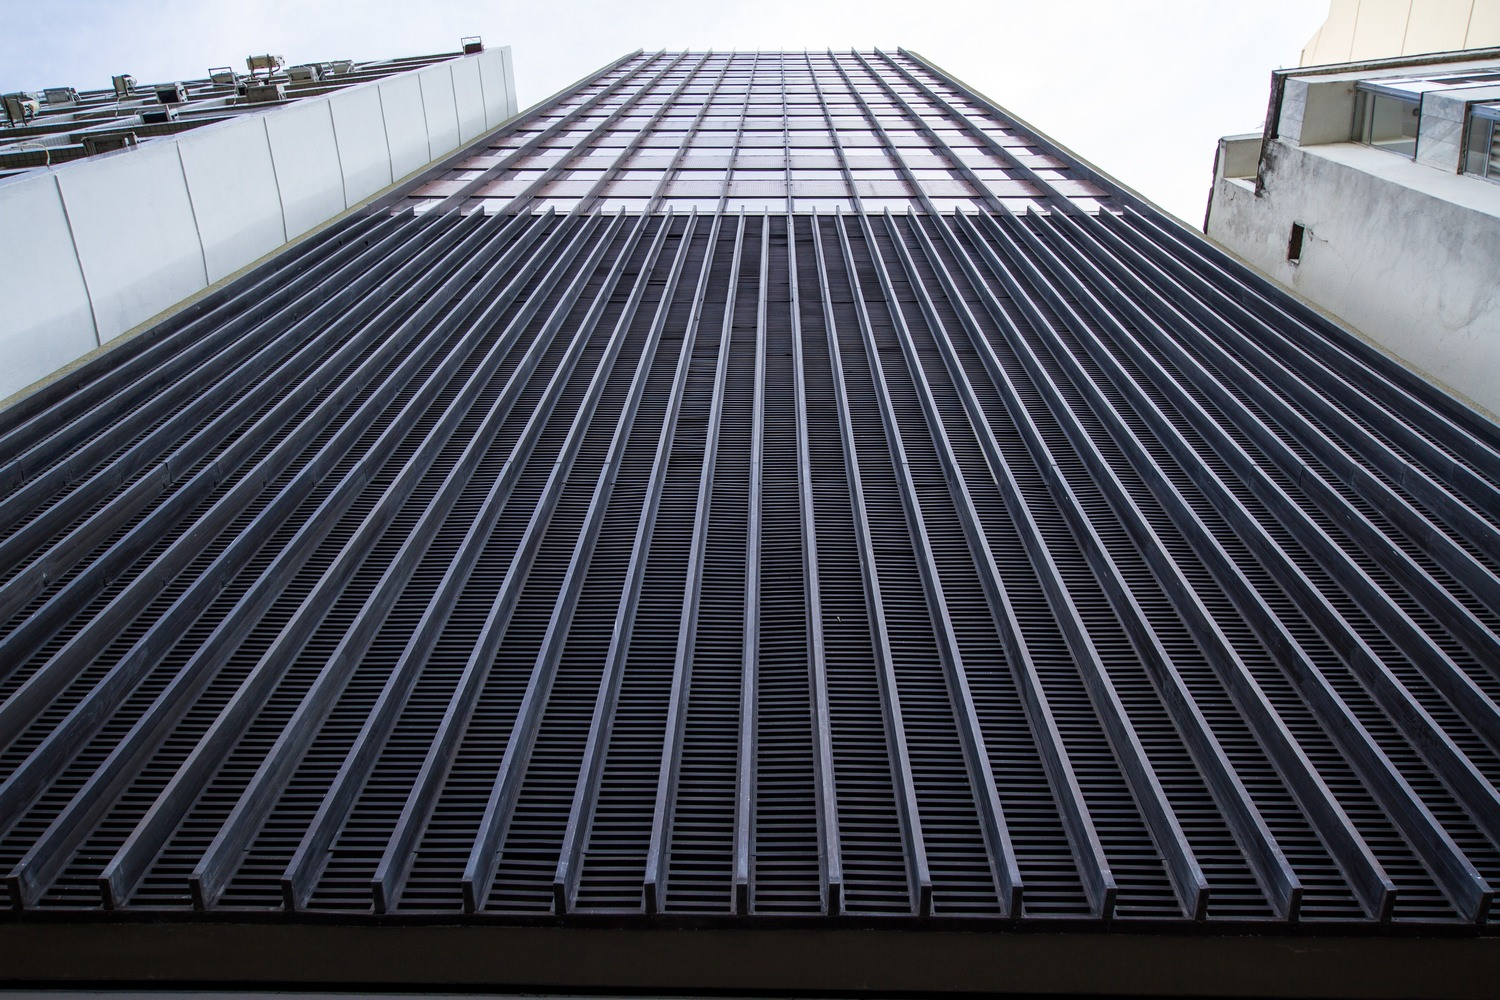 Low angle view of the outside of a large building with metal grates on the outside.